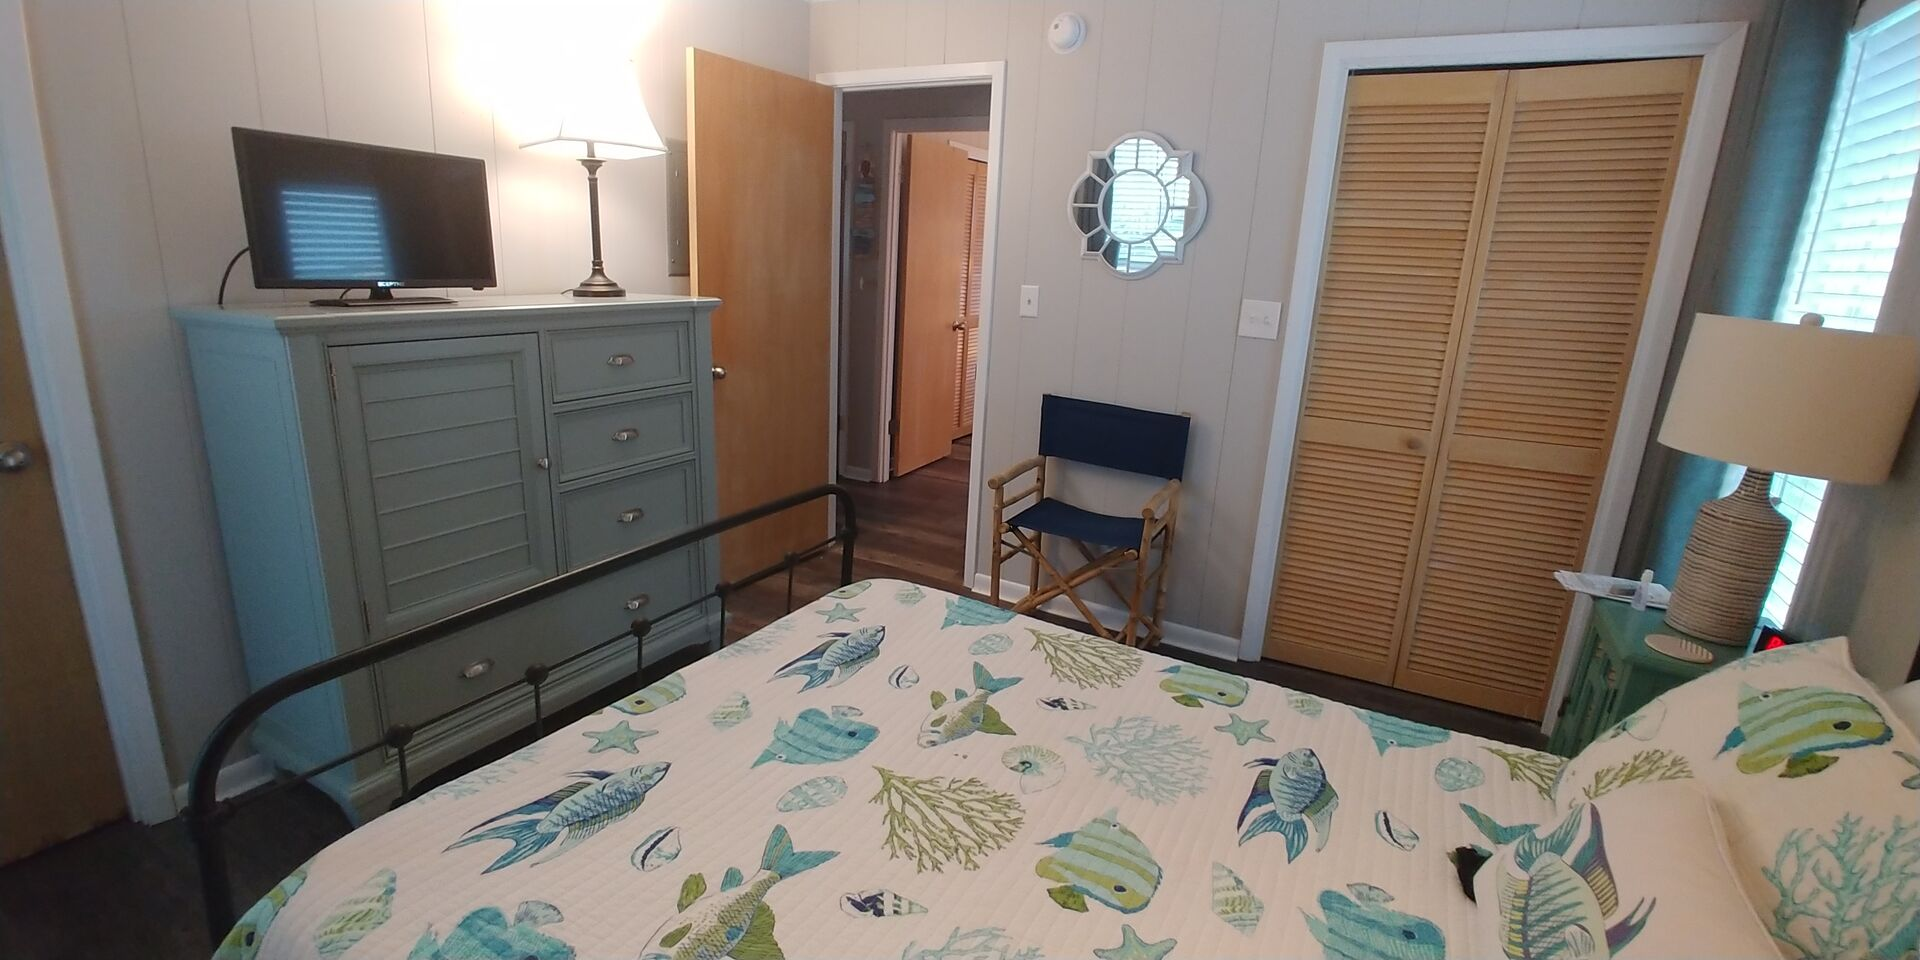 Large Bed, Dresser, Lamps, Chair, TV, and Closet Doors.